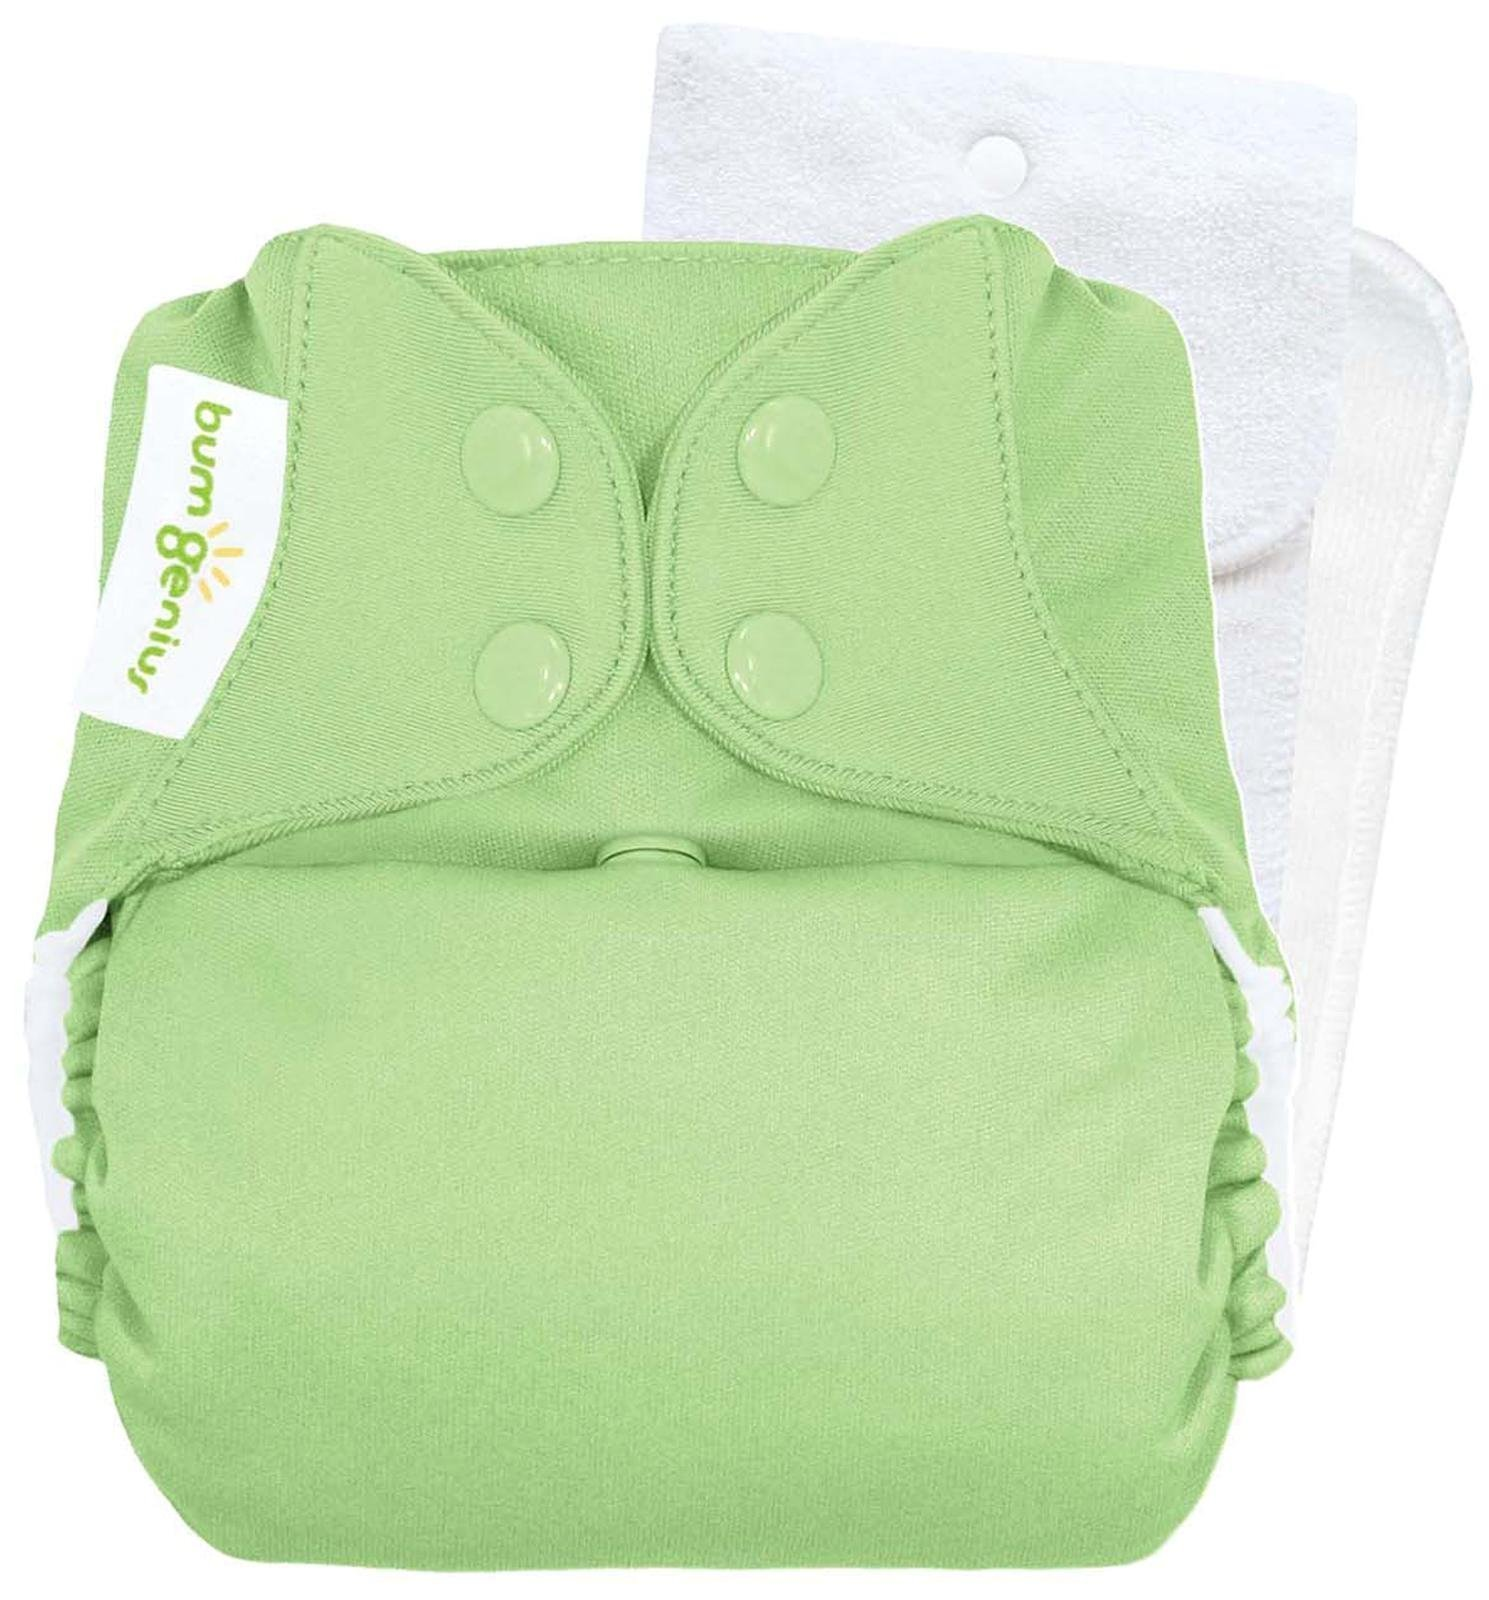 bumGenius Original One-Size Pocket-Style Cloth Diaper 5.0 (Grasshopper)